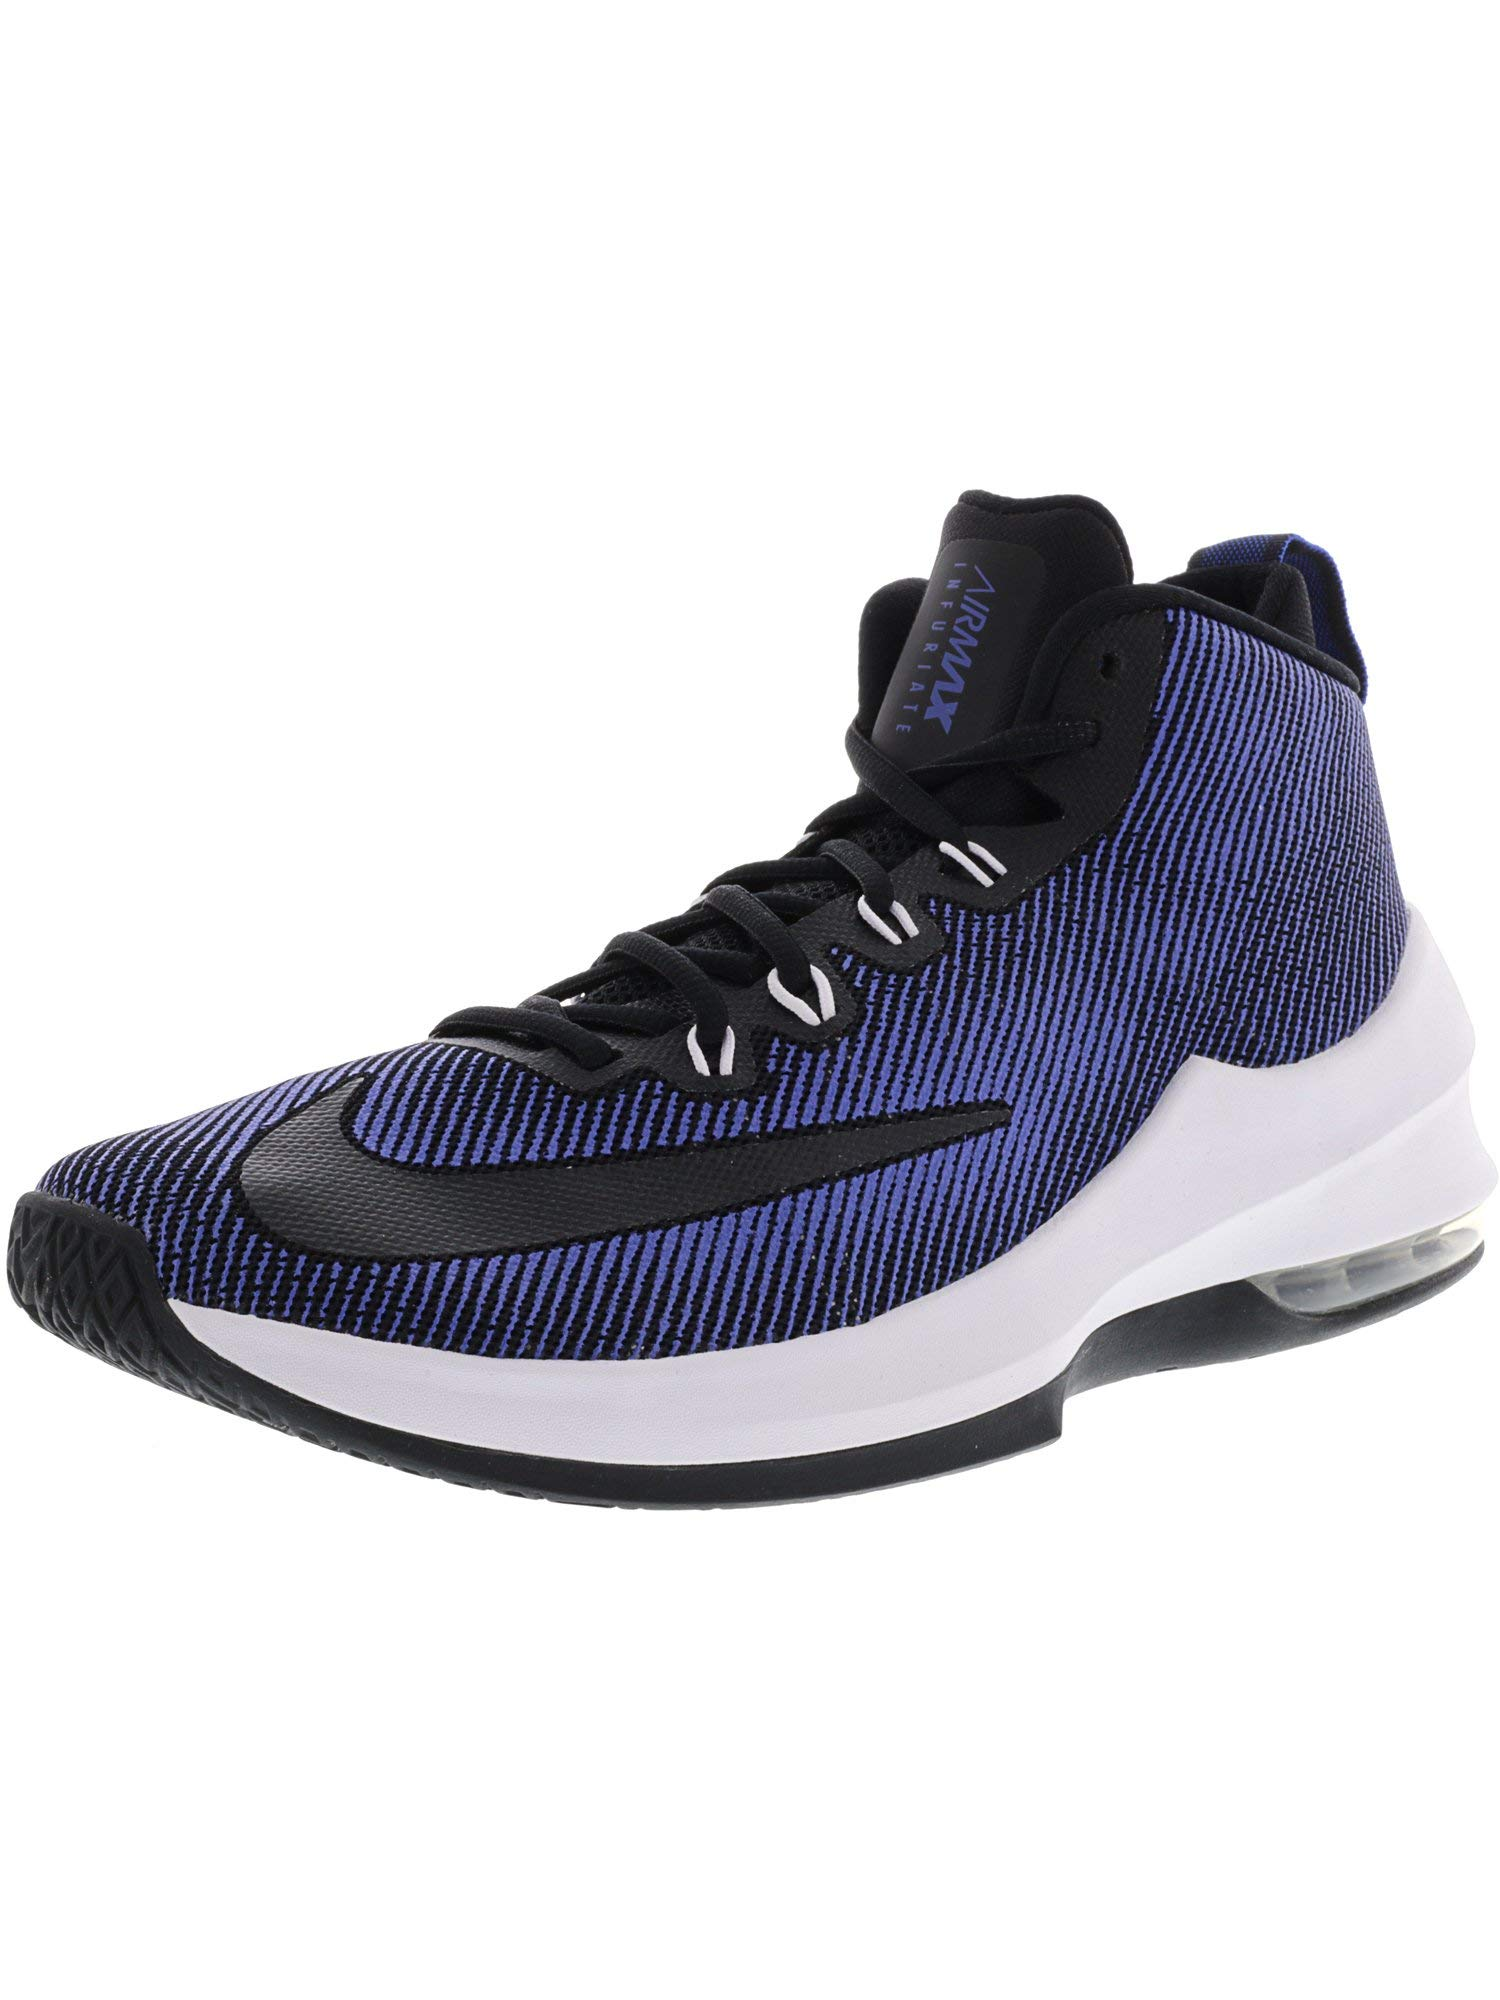 Galleon - NIKE Air Max Infuriate Mid Basketball Shoes (8.5 D(M) US ... 582b8590c